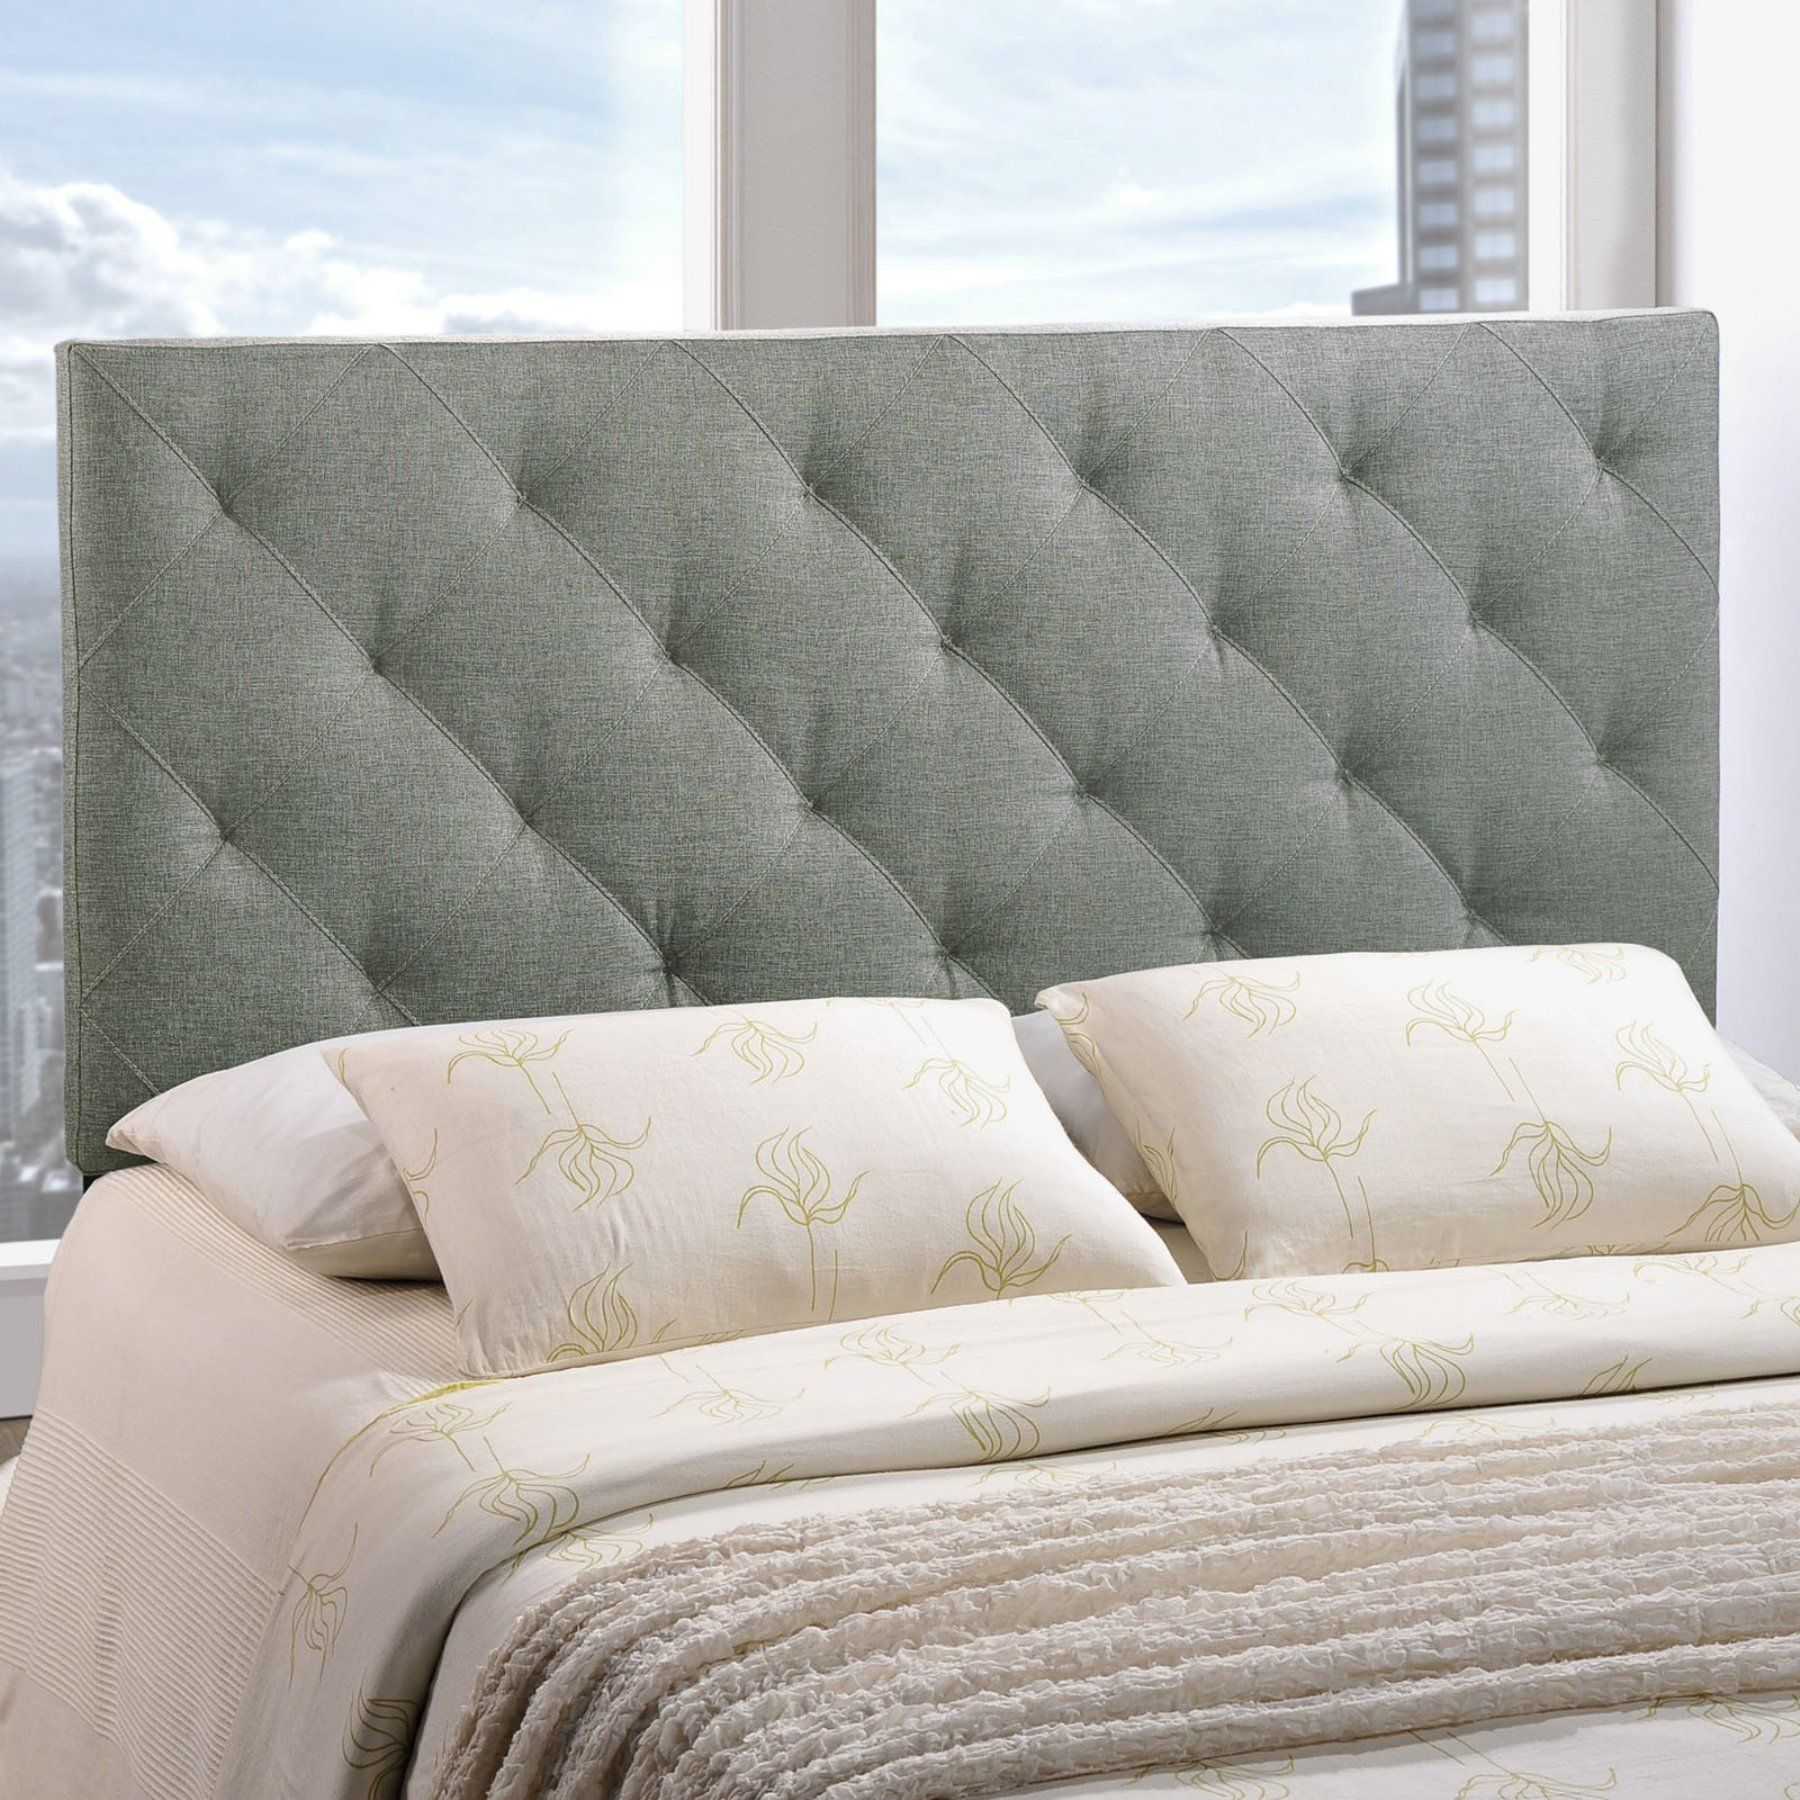 brilliant grey white double design bedspread bedroom contemporary tufted bathroom pillows headboards for with classy headboard and